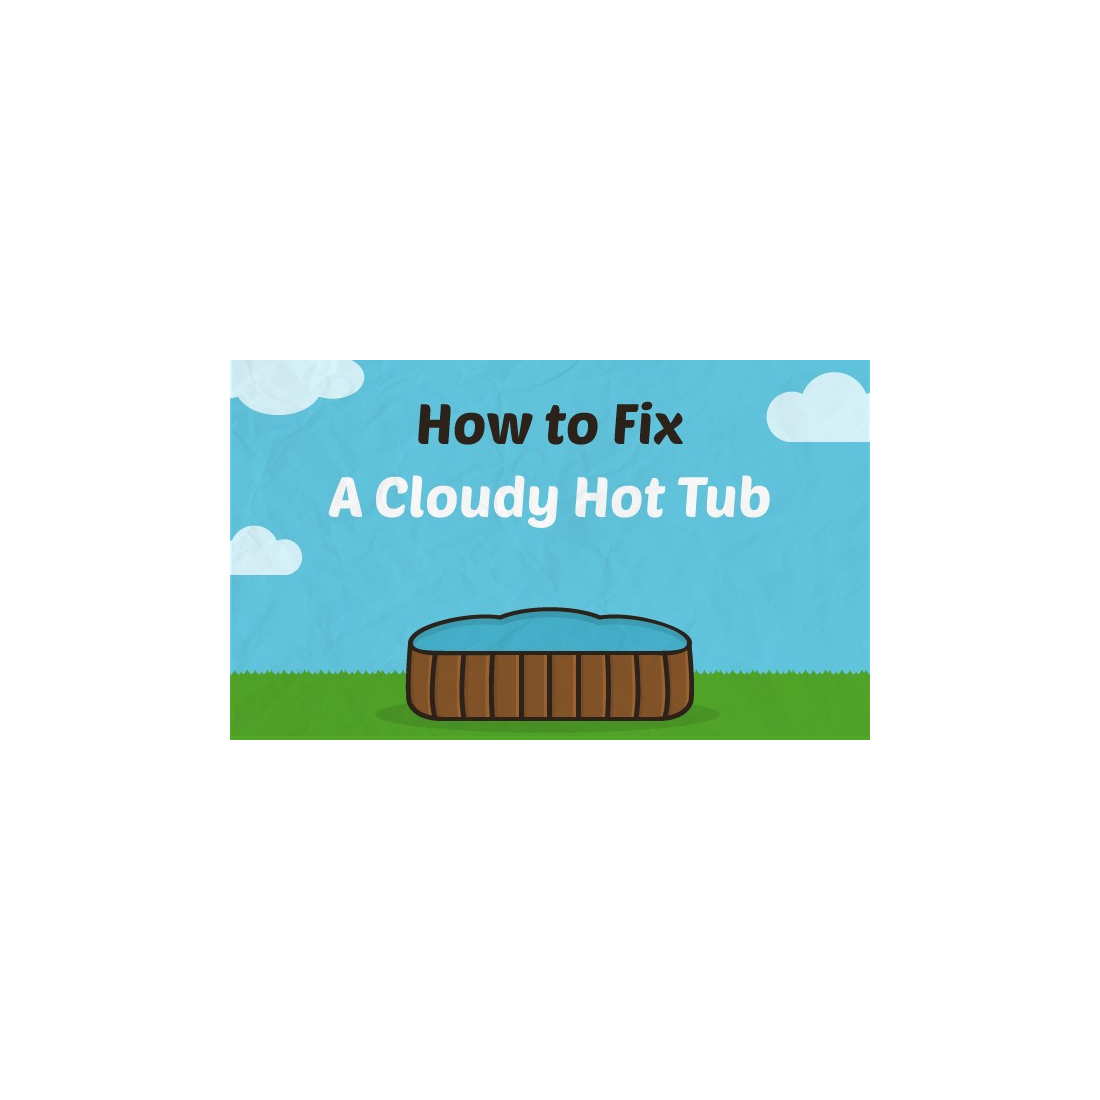 How To Fix A Cloudy Hot Tub